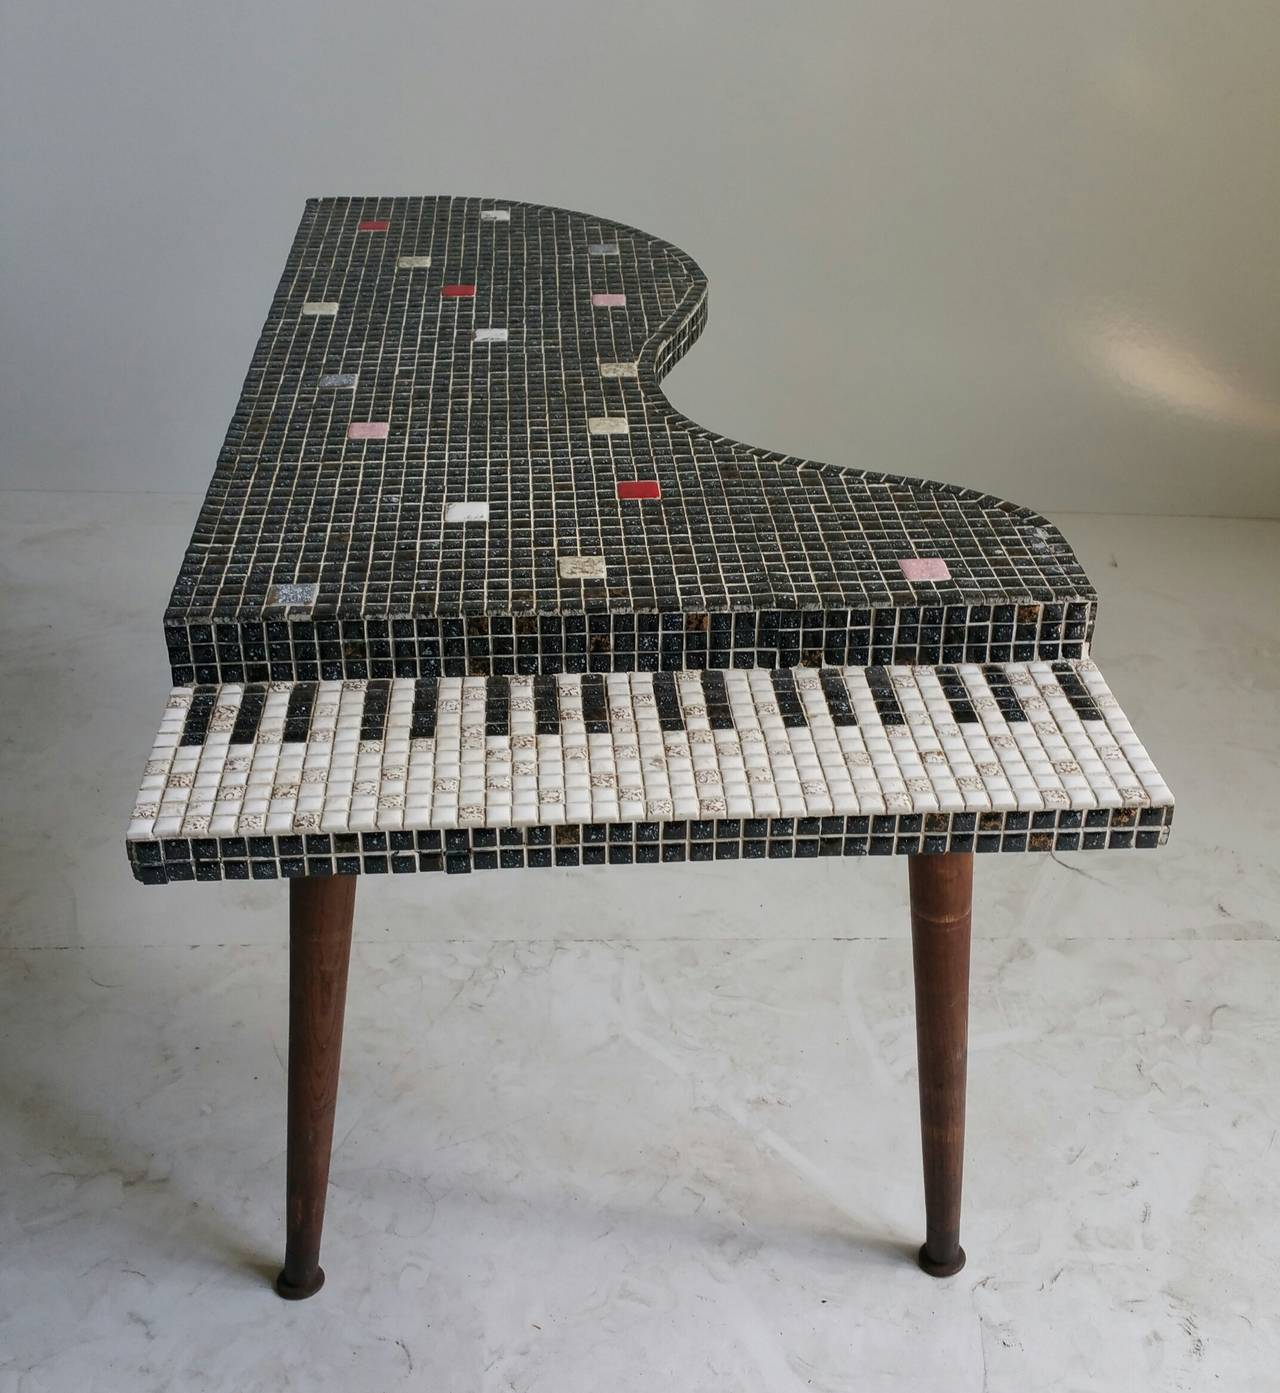 American Mid Century Modern Atomic Age Small Patio Round: Mid-Century Modern Baby Grand Piano Shaped, Tiled Cocktail